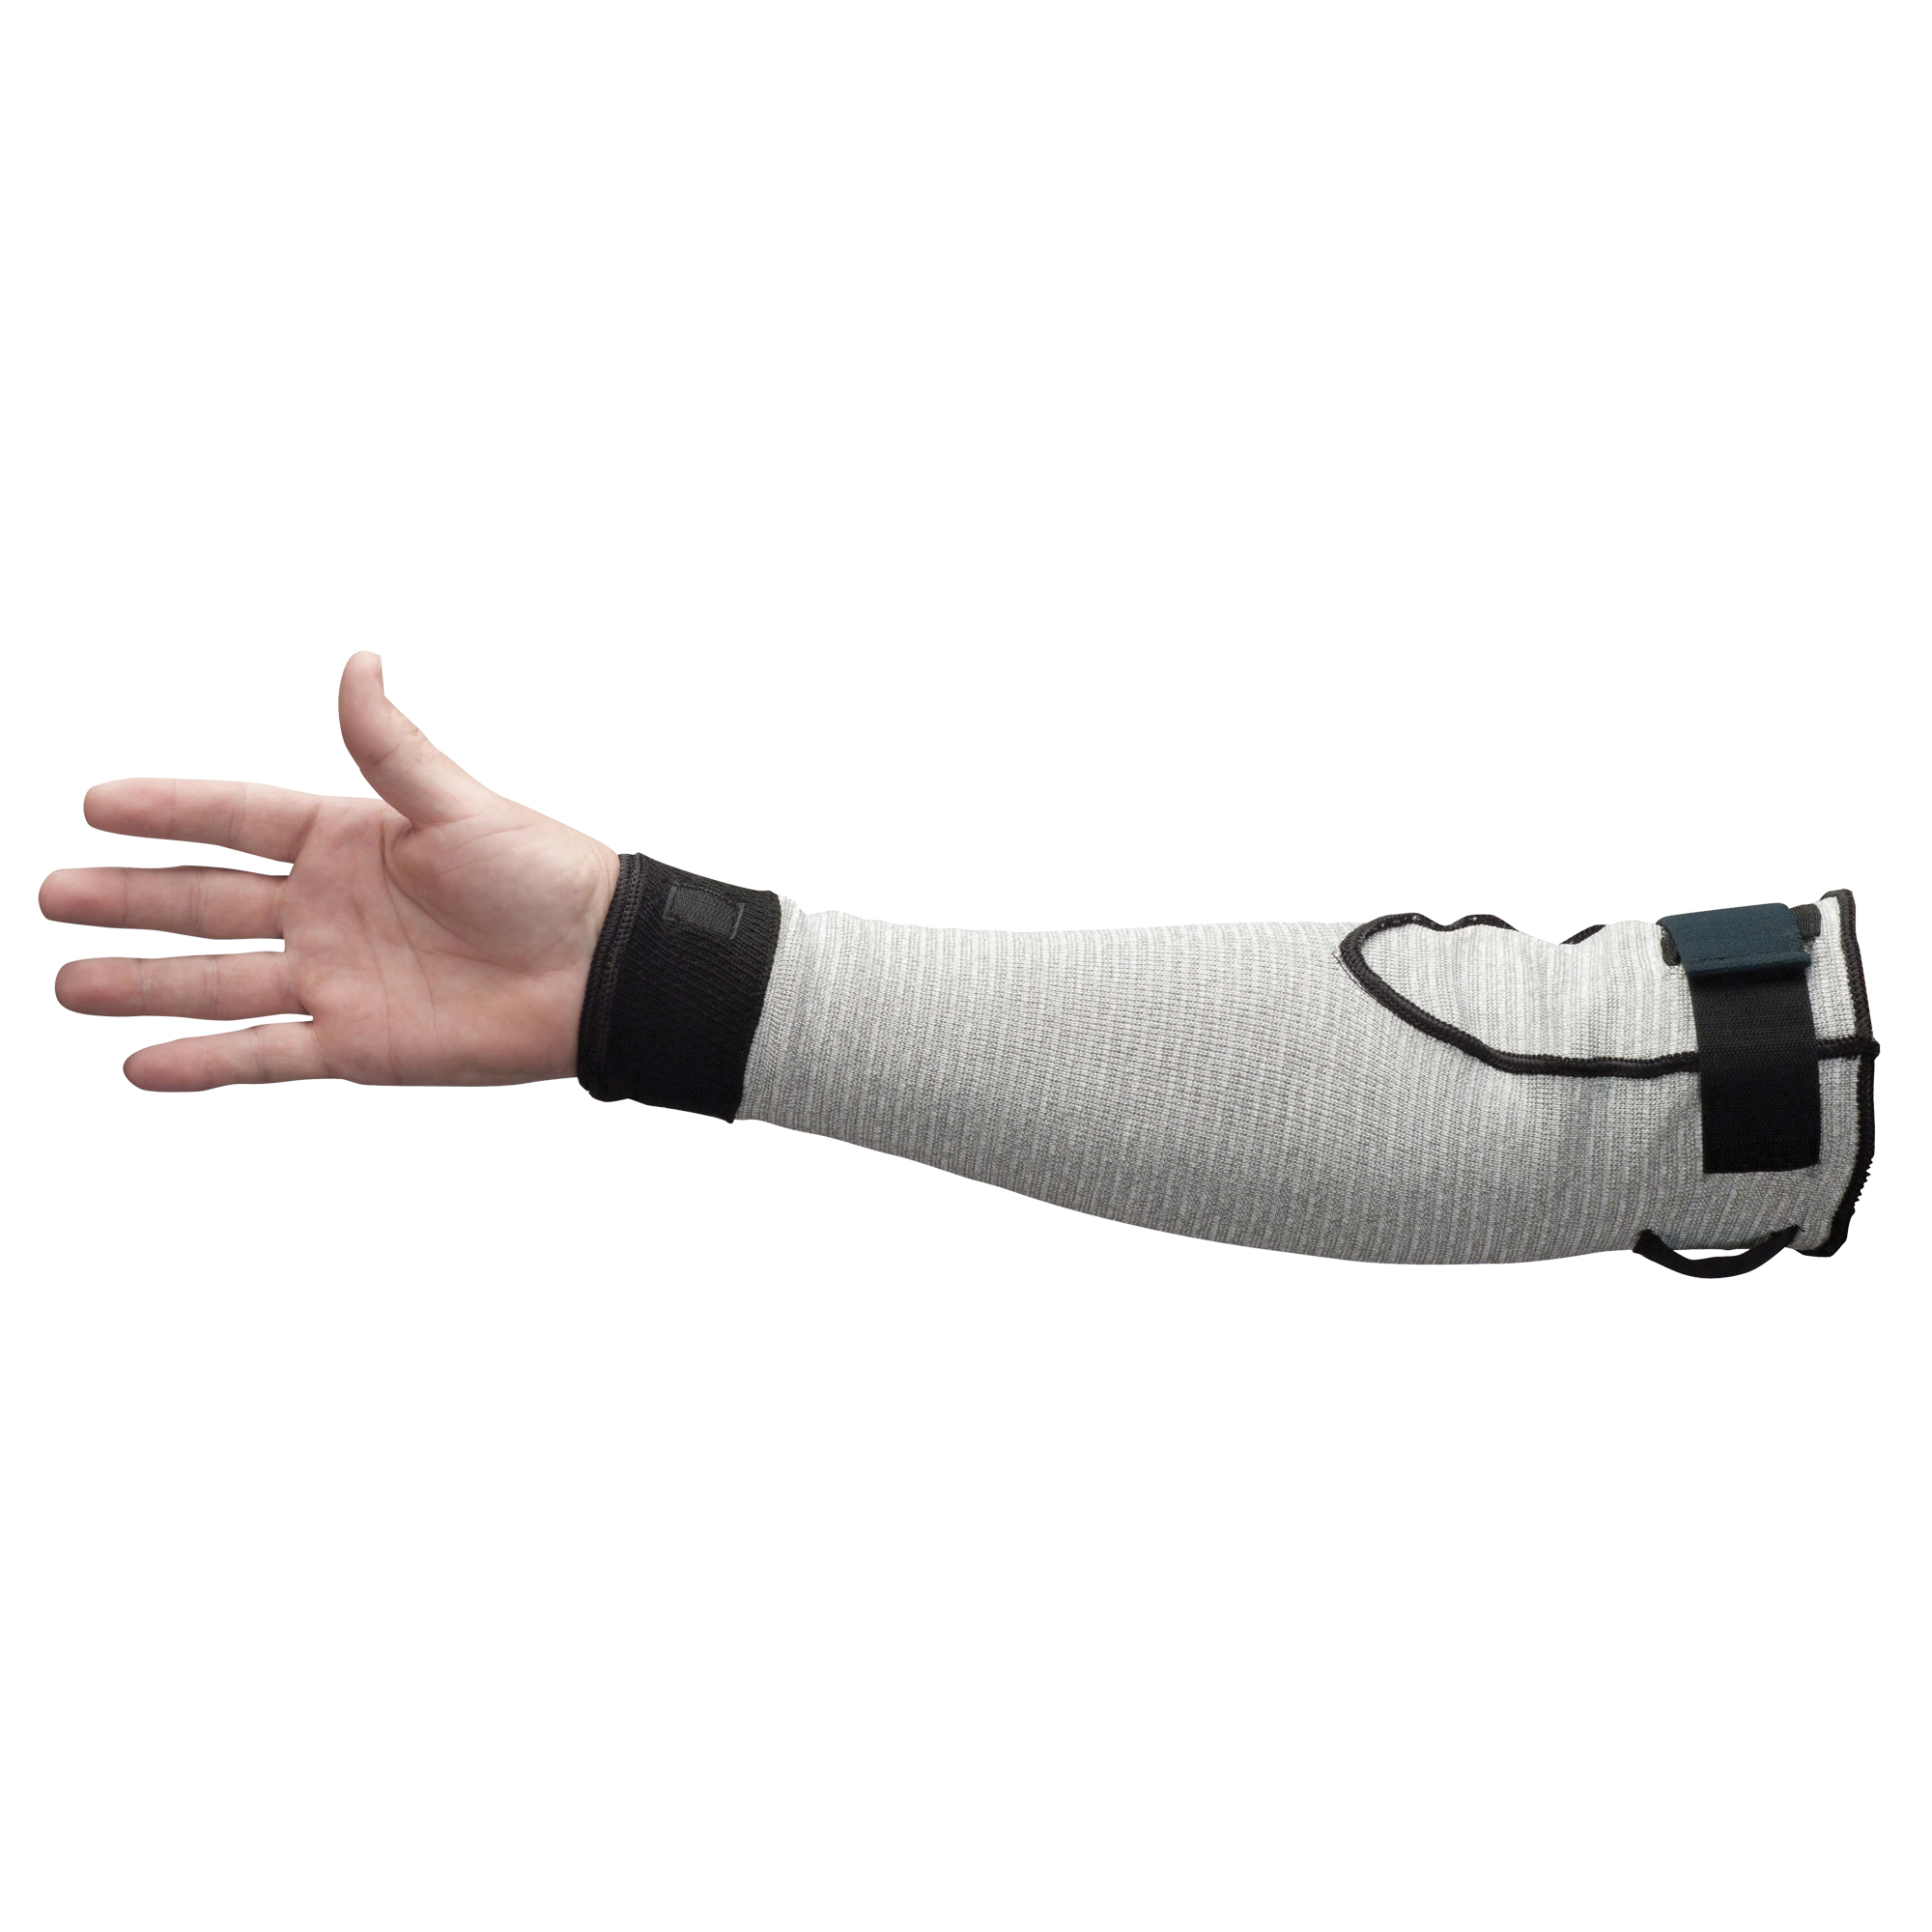 G60 Level 5 Cut Resistant Sleeves